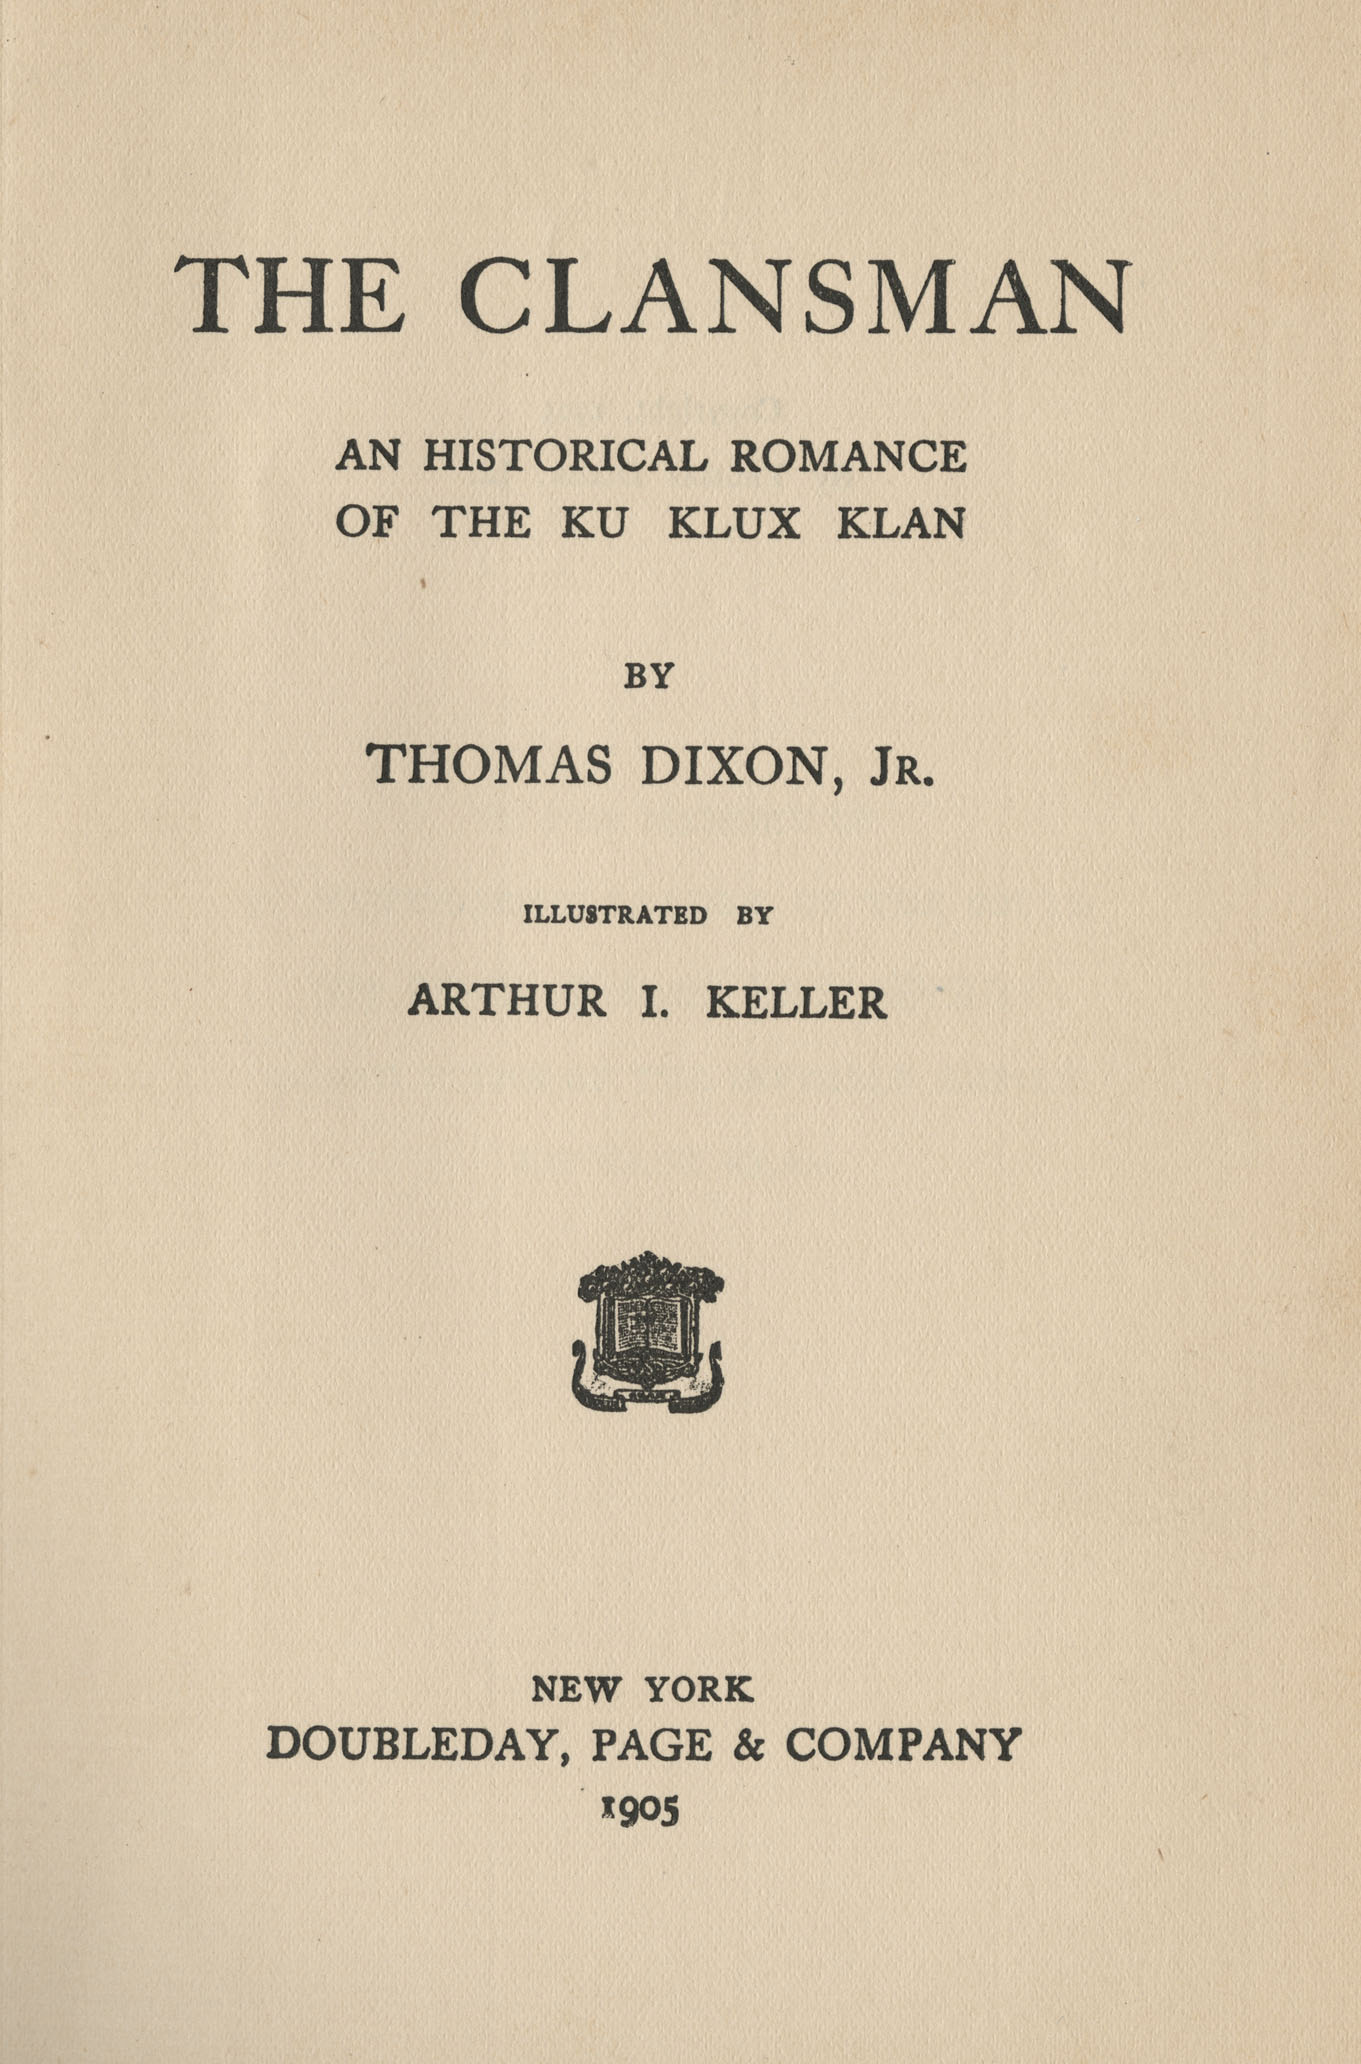 The Clansman is among five of Dixons novels held by Special Collections. The librarys main collection holds several more titles.